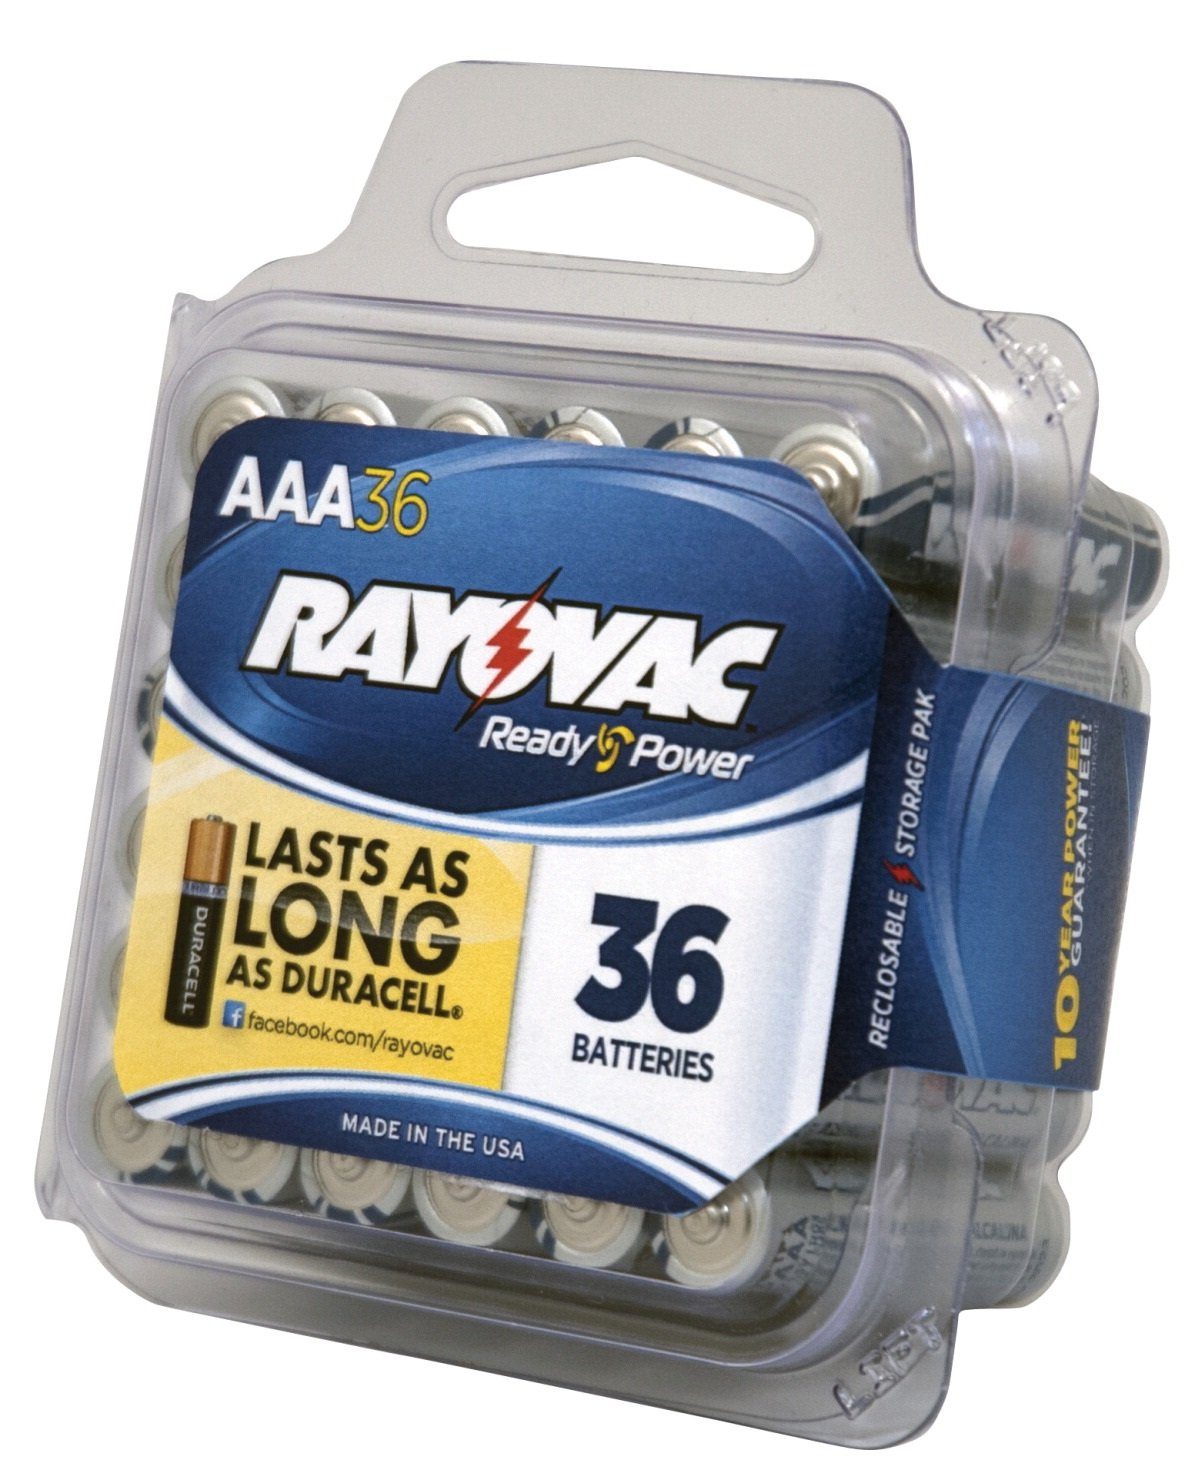 Rayovac 824-36PPF Alkaline AAA Batteries, 36-Pack with Reclose able Lid, 2.75'' Height, 3'' Width